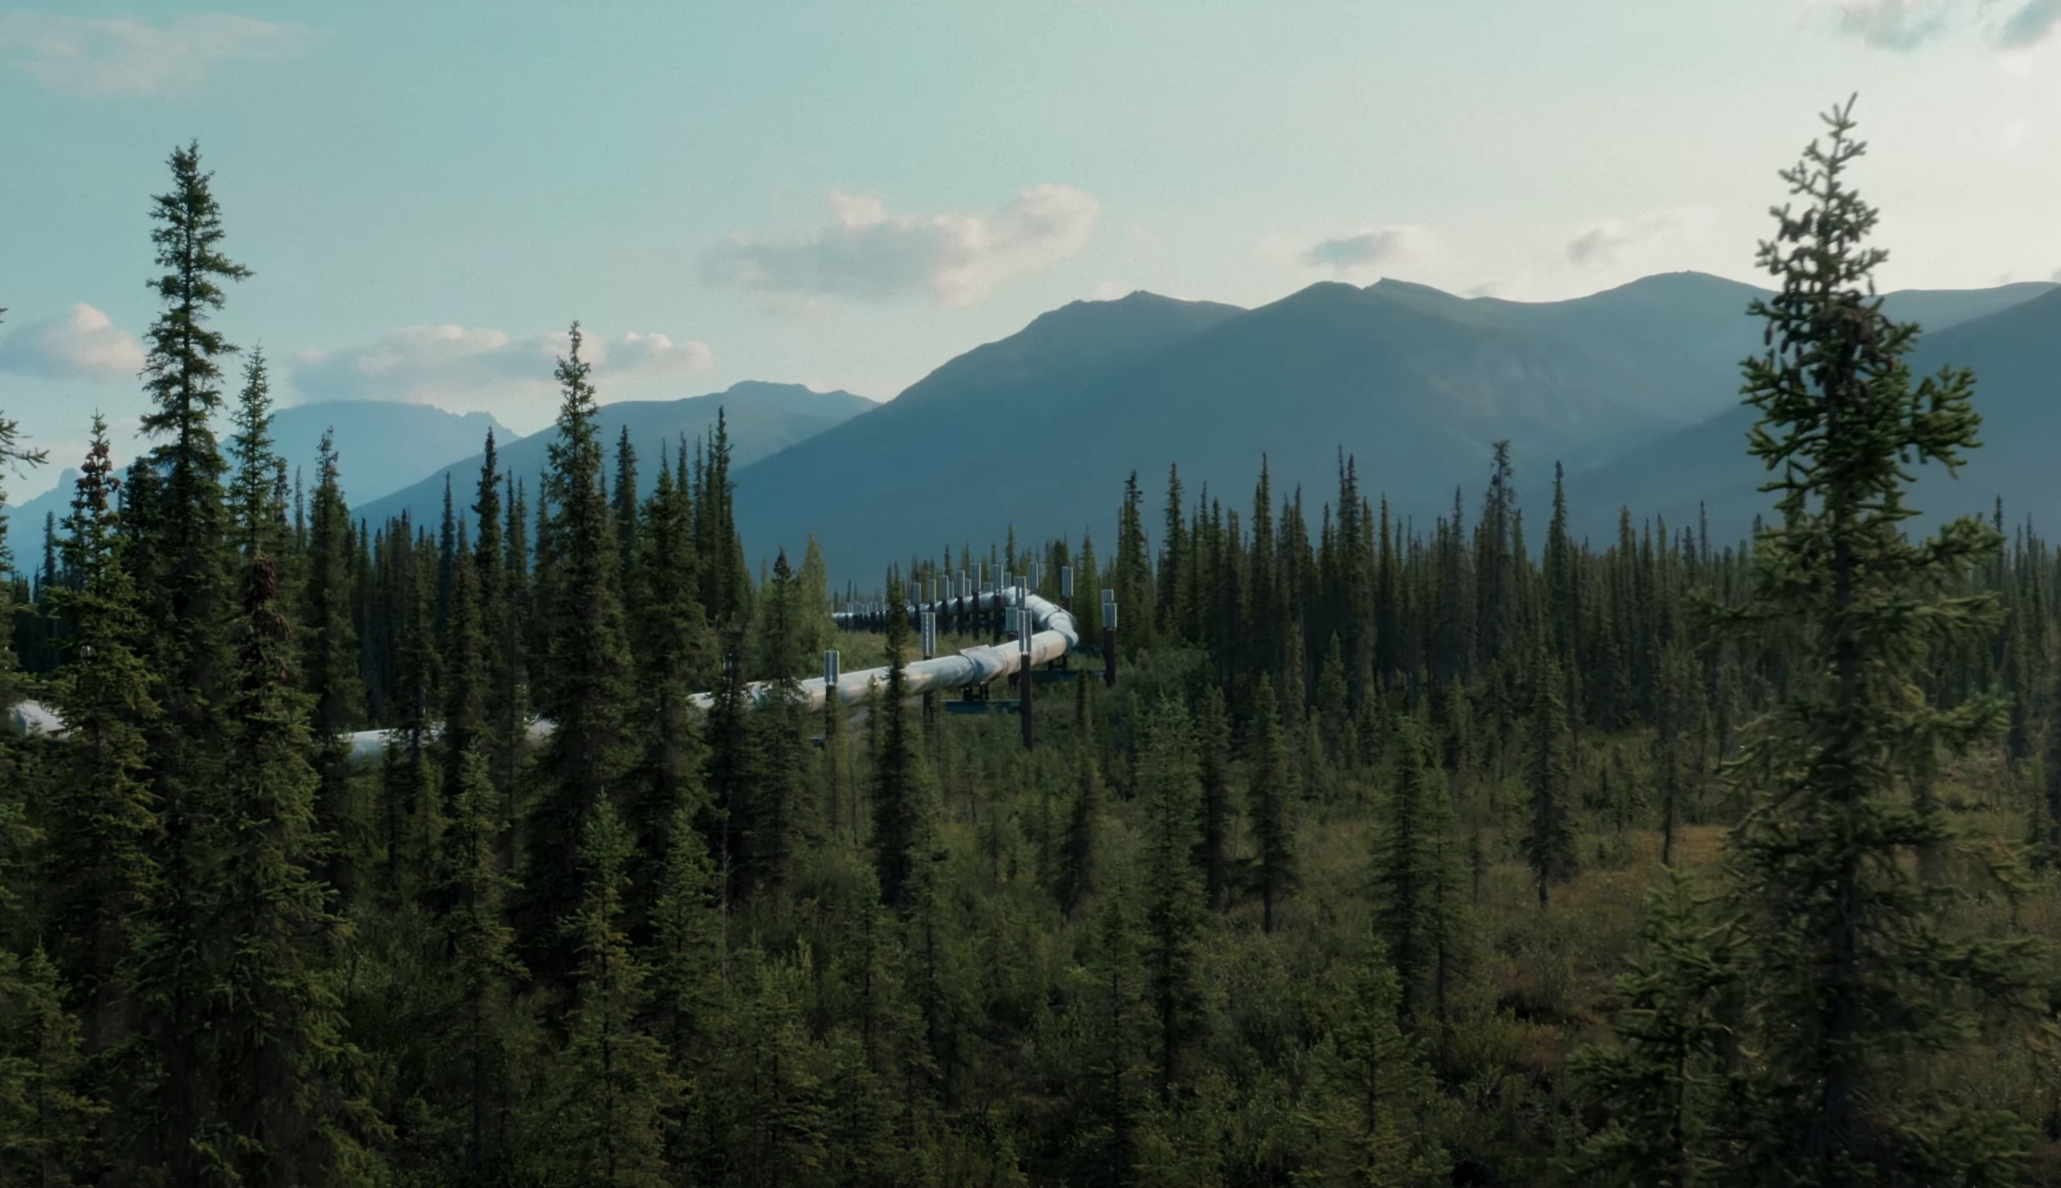 Lael Wilcox Attempts the Fastest Known Time Along the 800-mile Trans-Alaska Pipeline